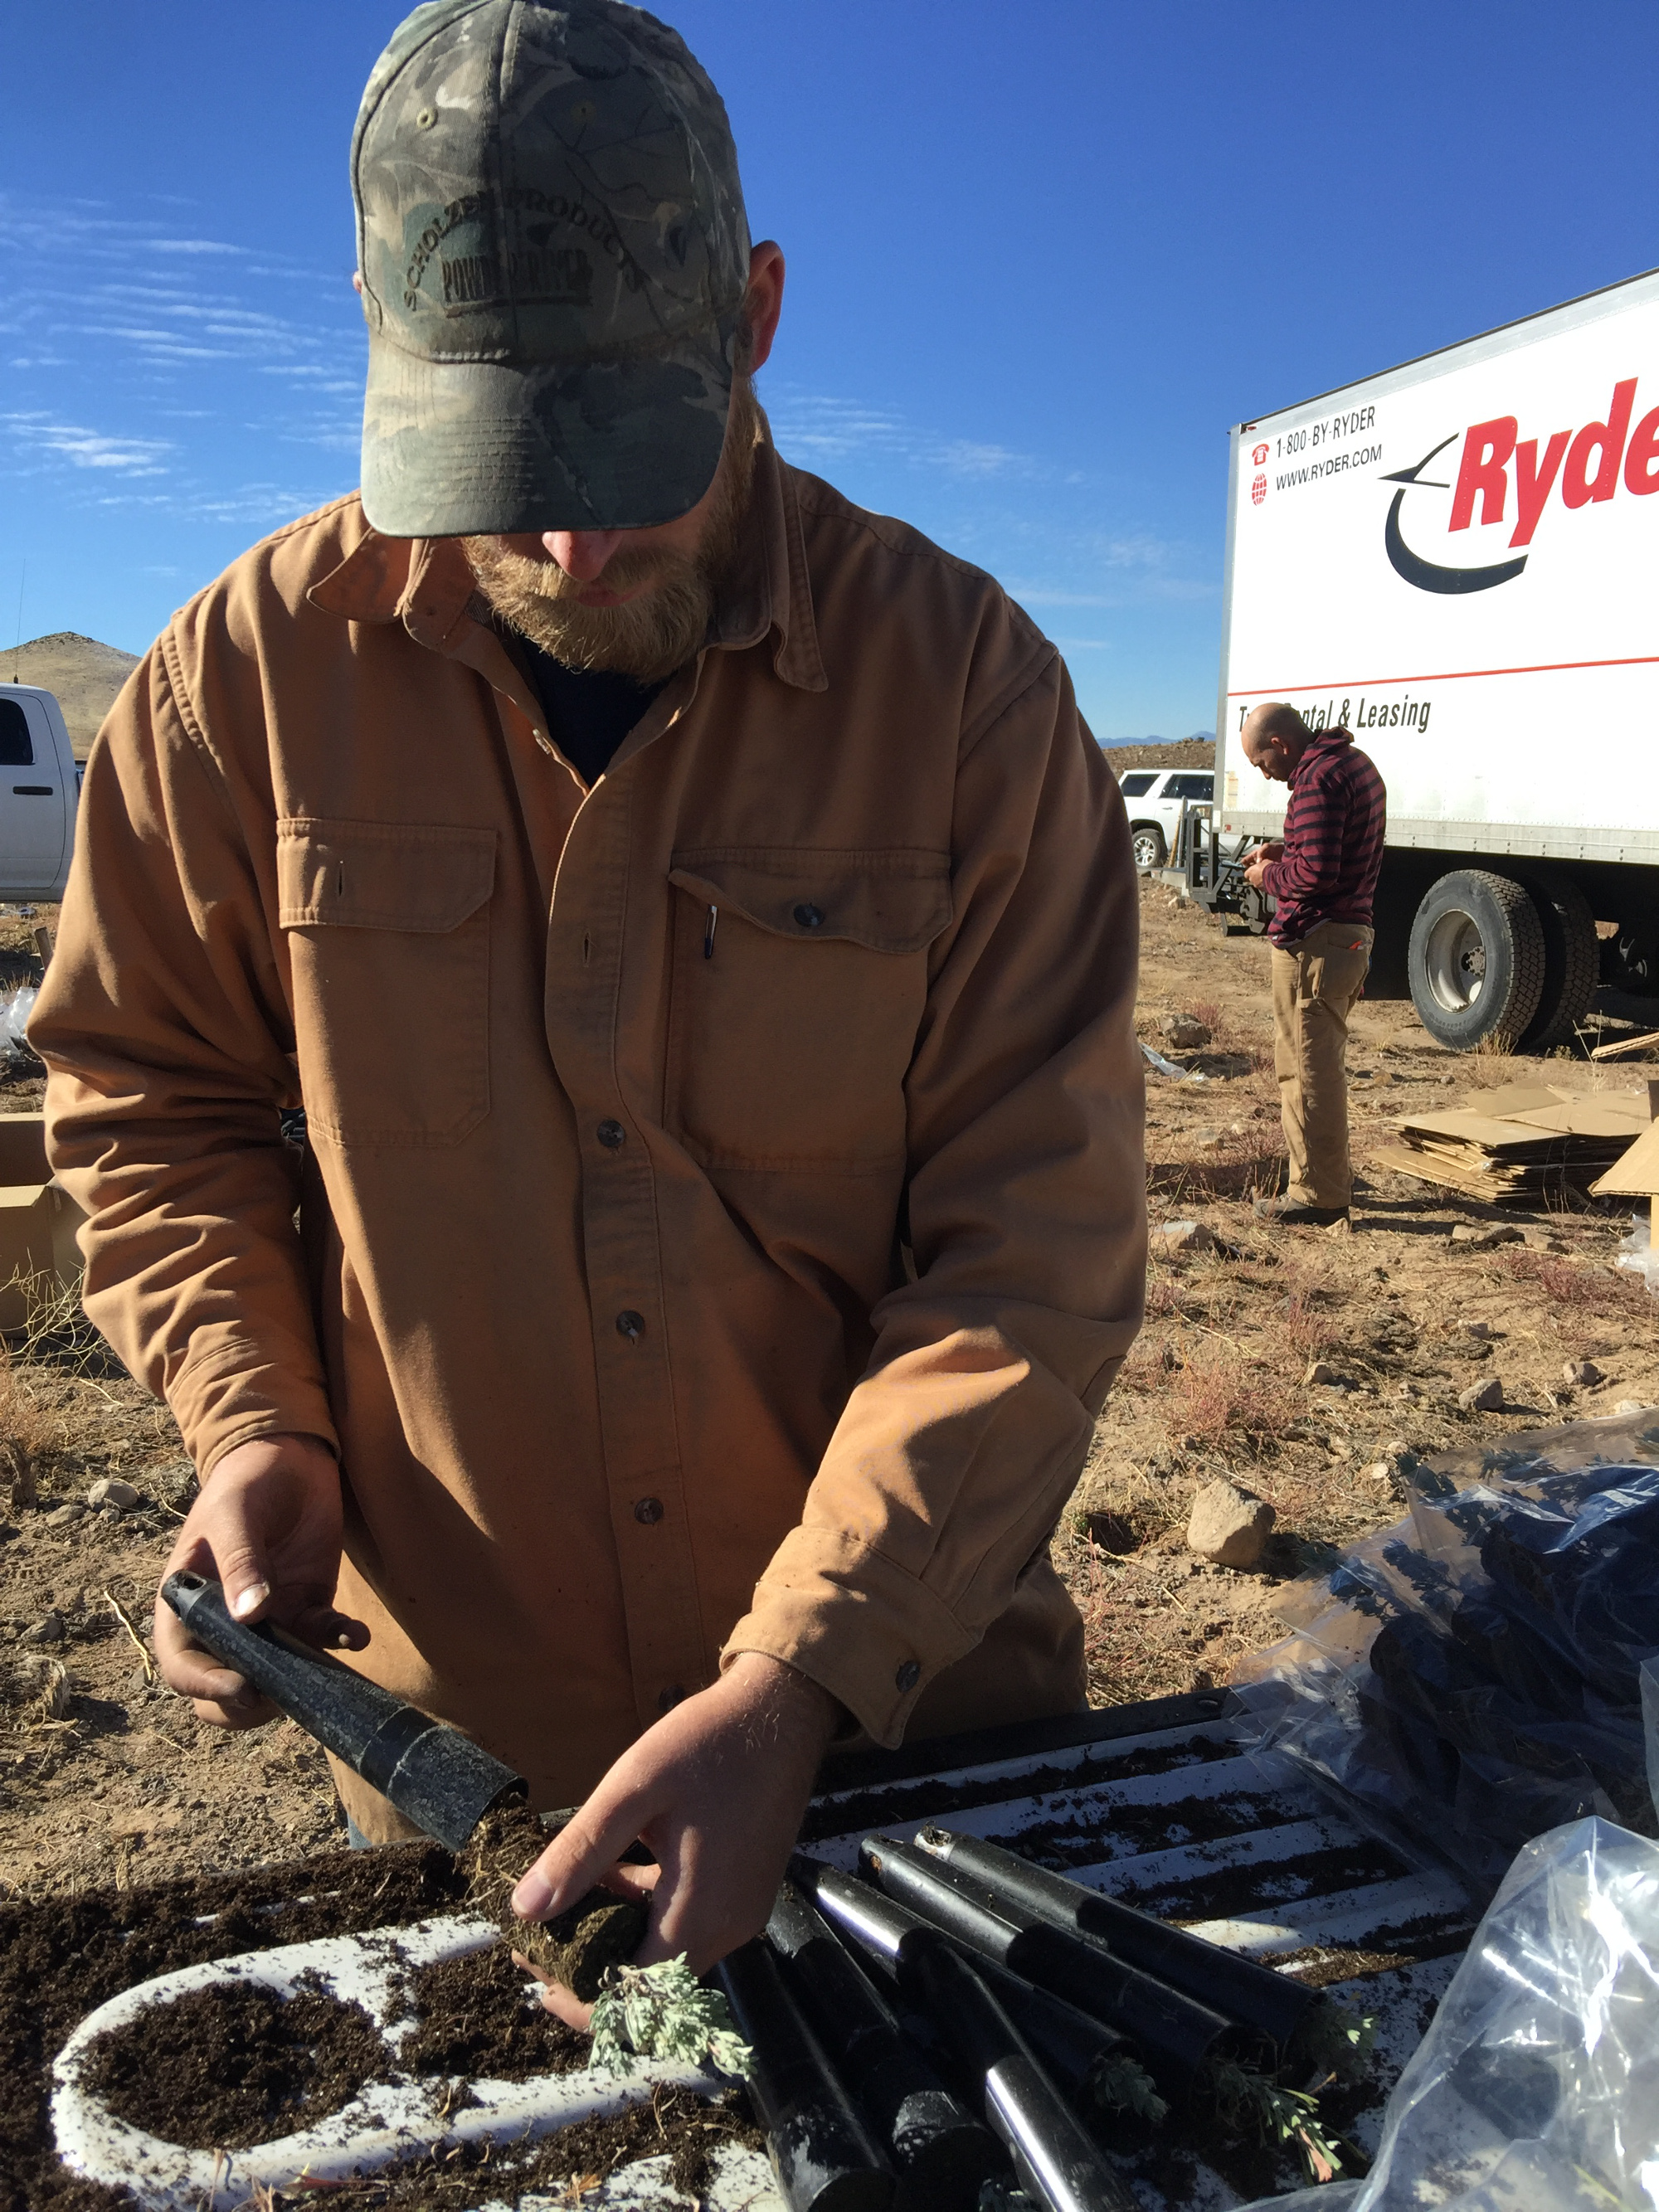 Bureau of Land Management staff plant sagebrush at the site of the 2012 Baboon Fire, Beaver County, Utah, Nov. 18, 2016 | Photo courtesy Bureau of Land Management, St. George News